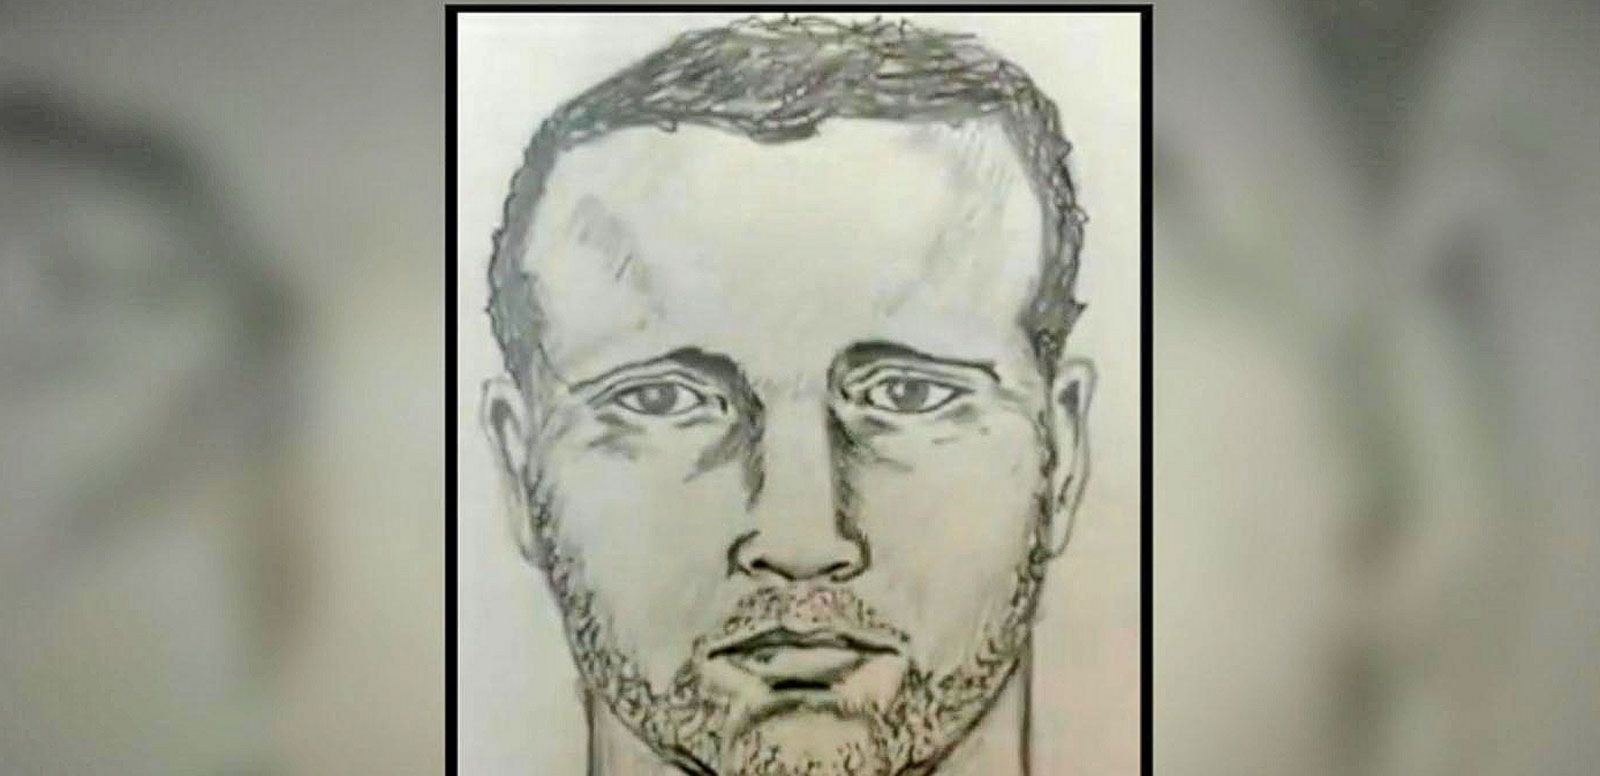 VIDEO: Florida Manhunt on the Way for Man Who Tried to Kidnap Teen